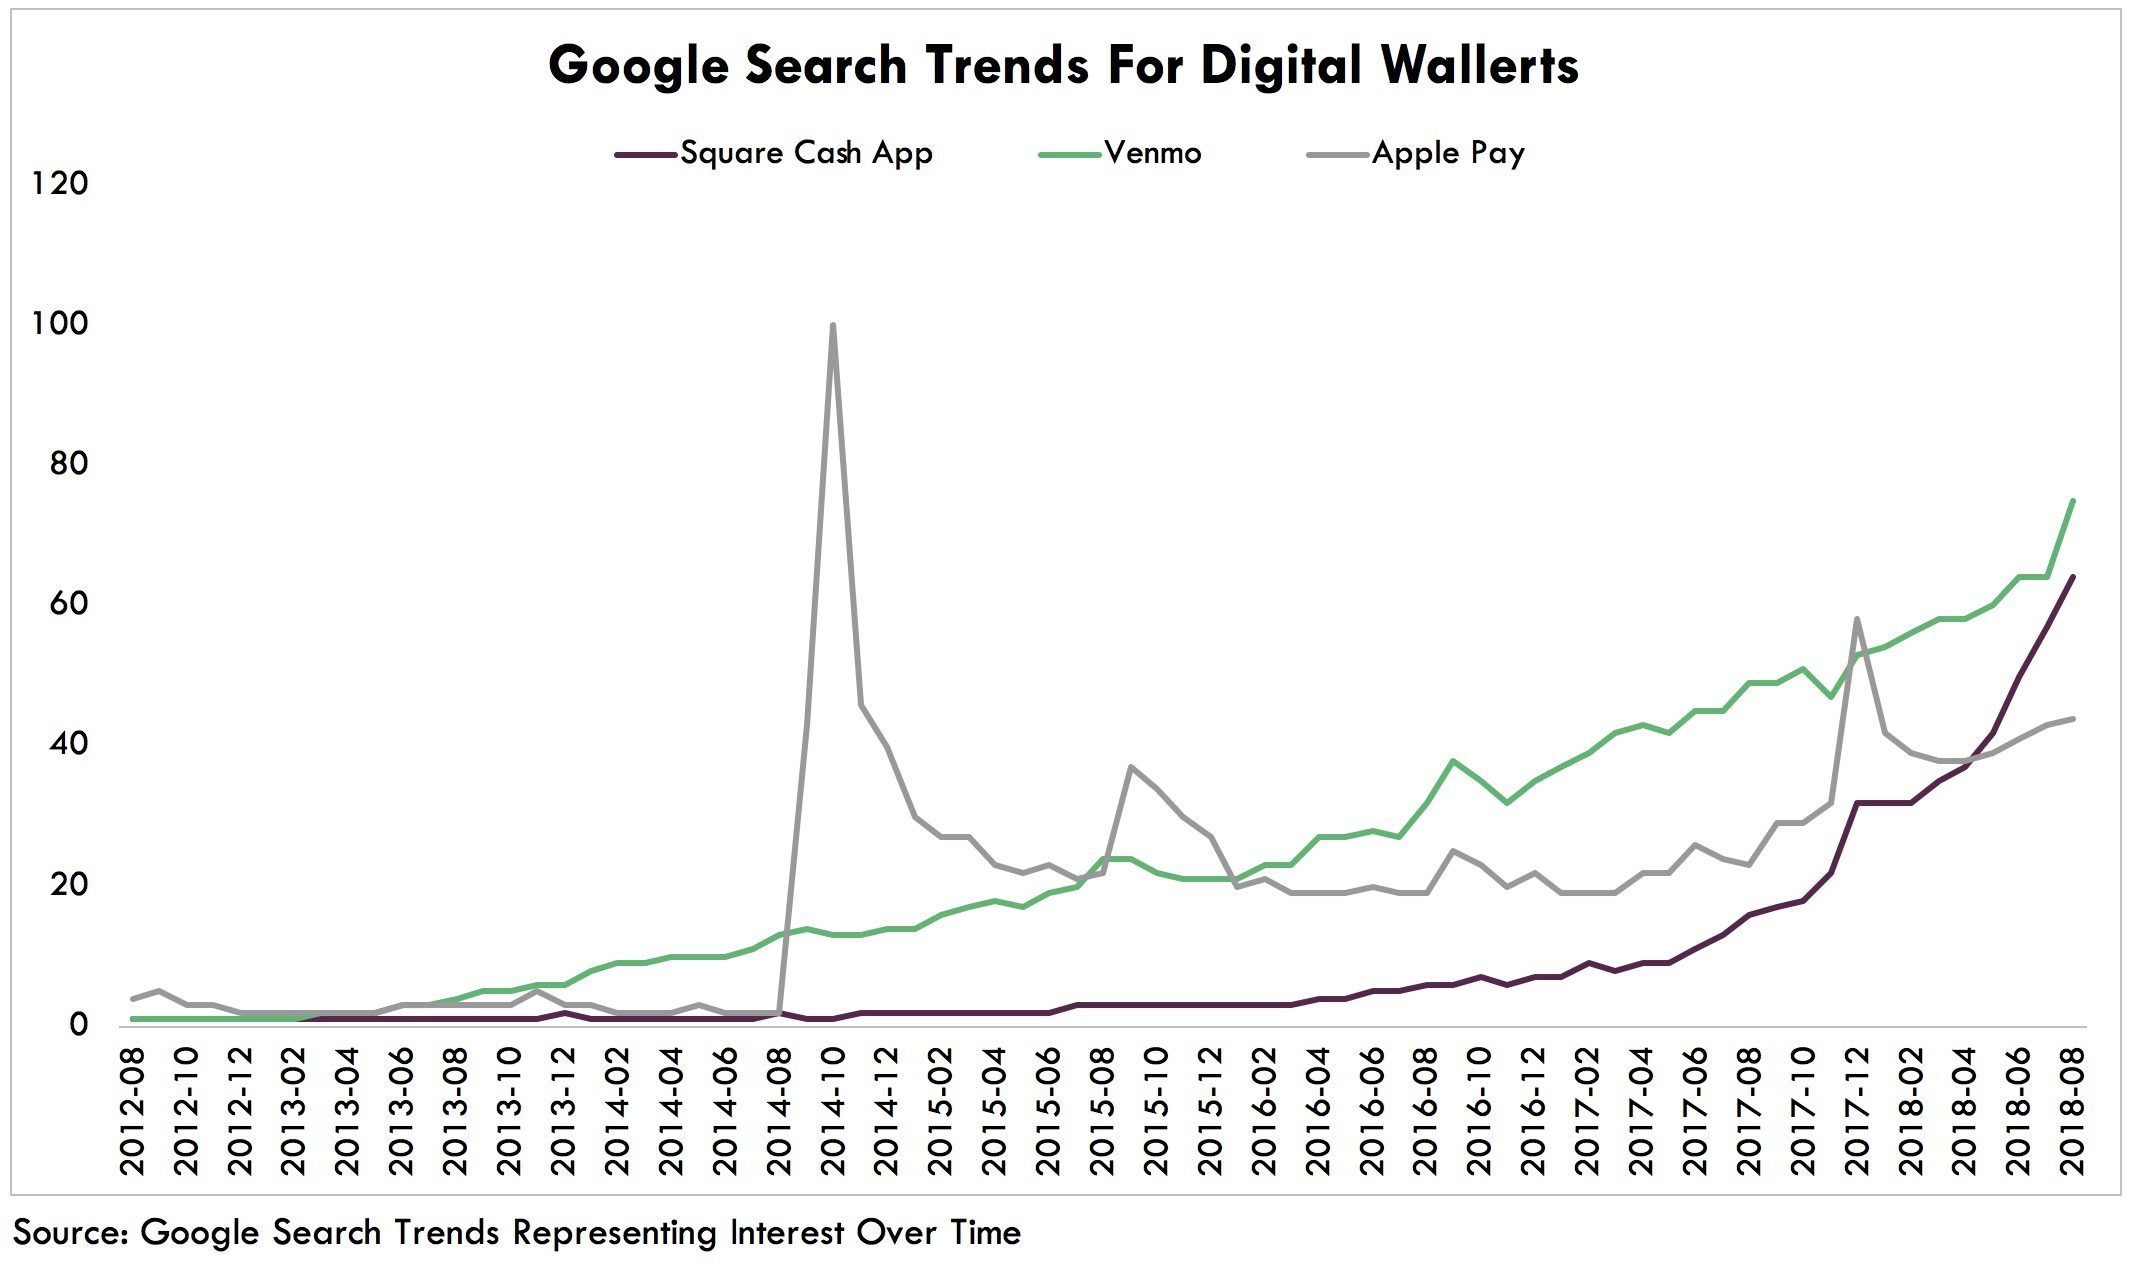 ARK Invest Google Search Trends for Digital Wallets